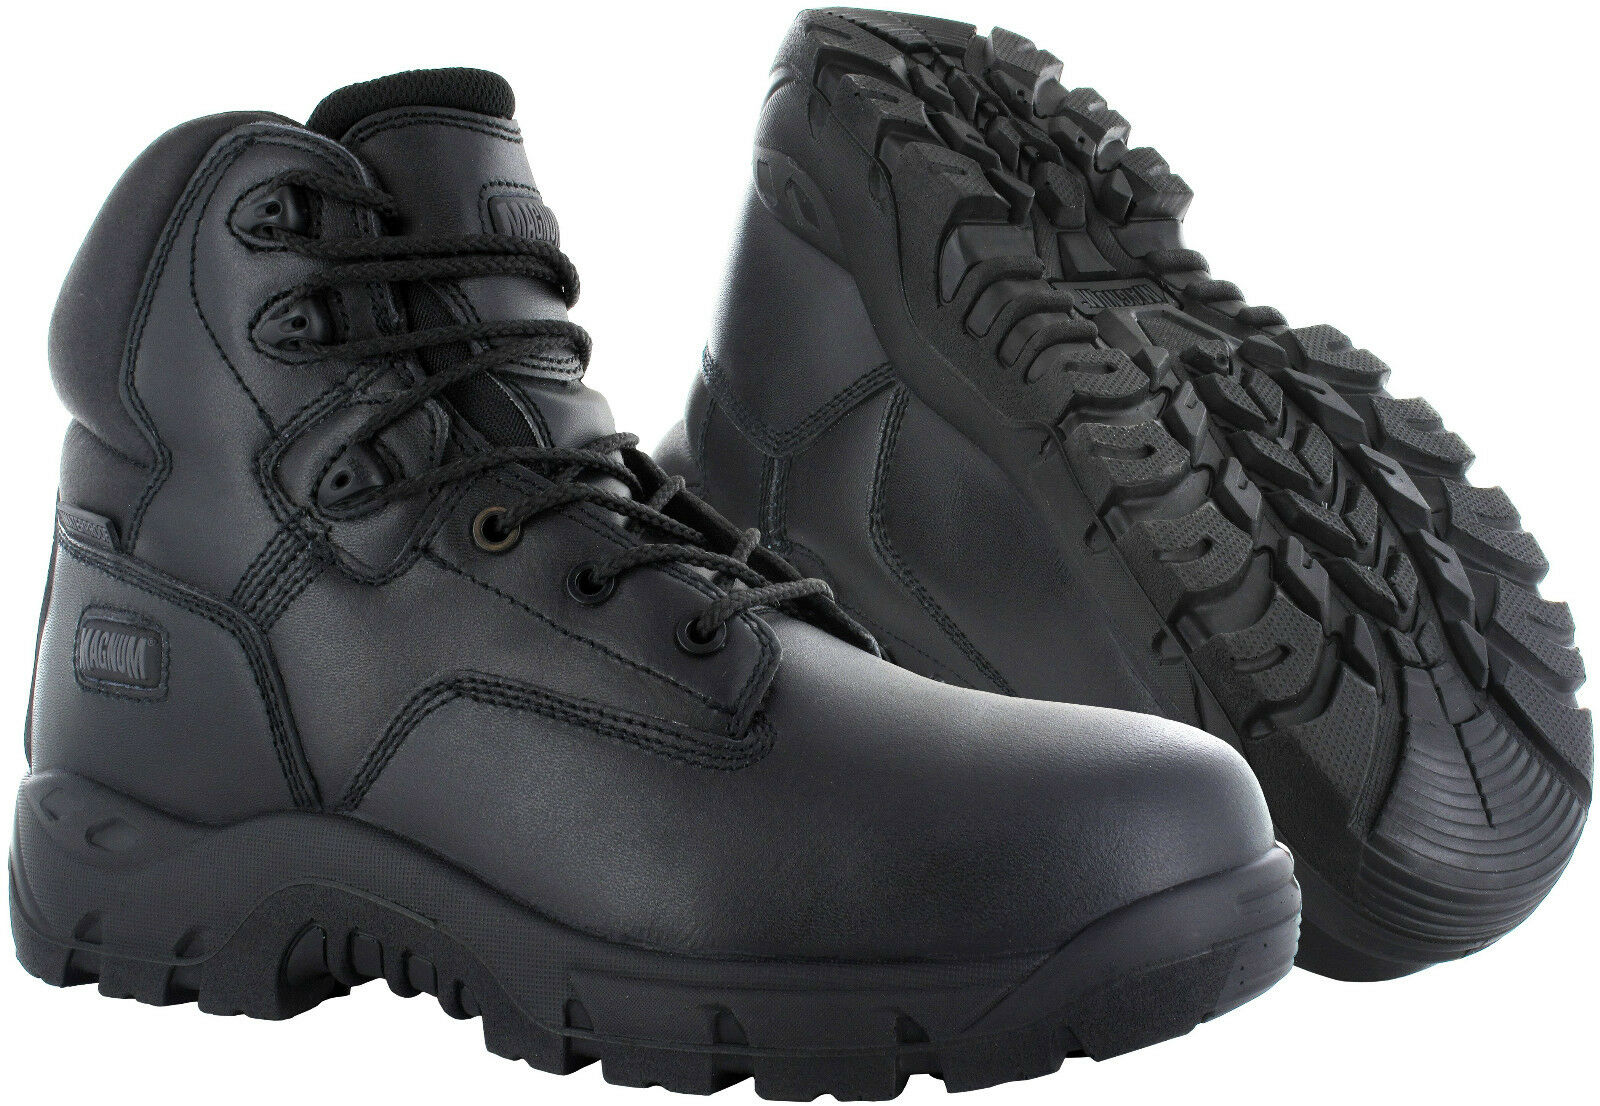 Magnum mens waterproof sitemaster safety hiking work botas